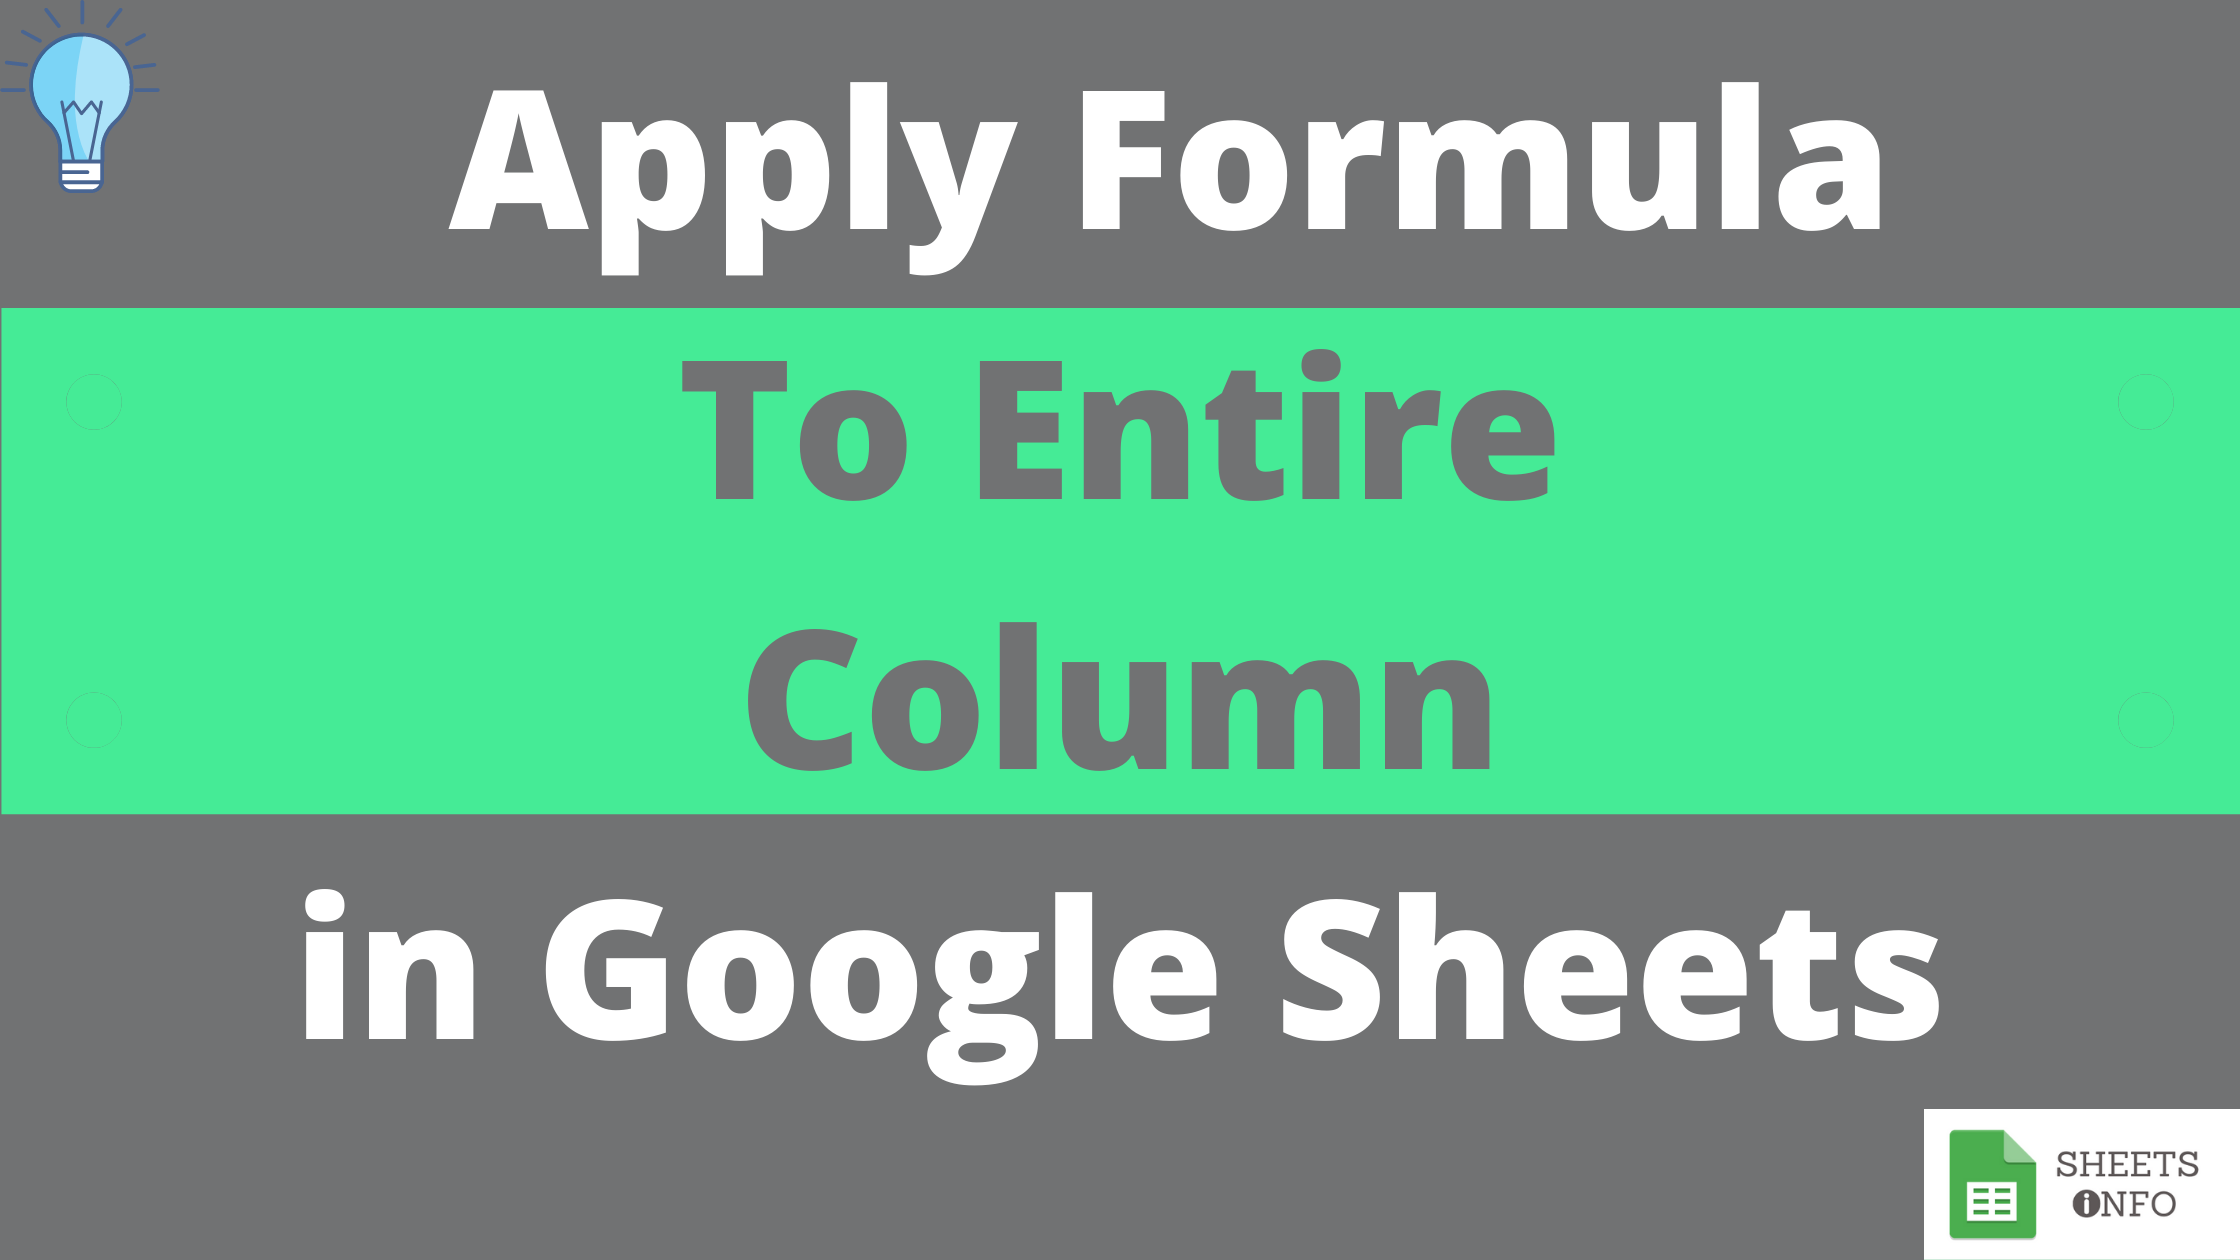 Apply Formulas To Entire Column in Google Sheets